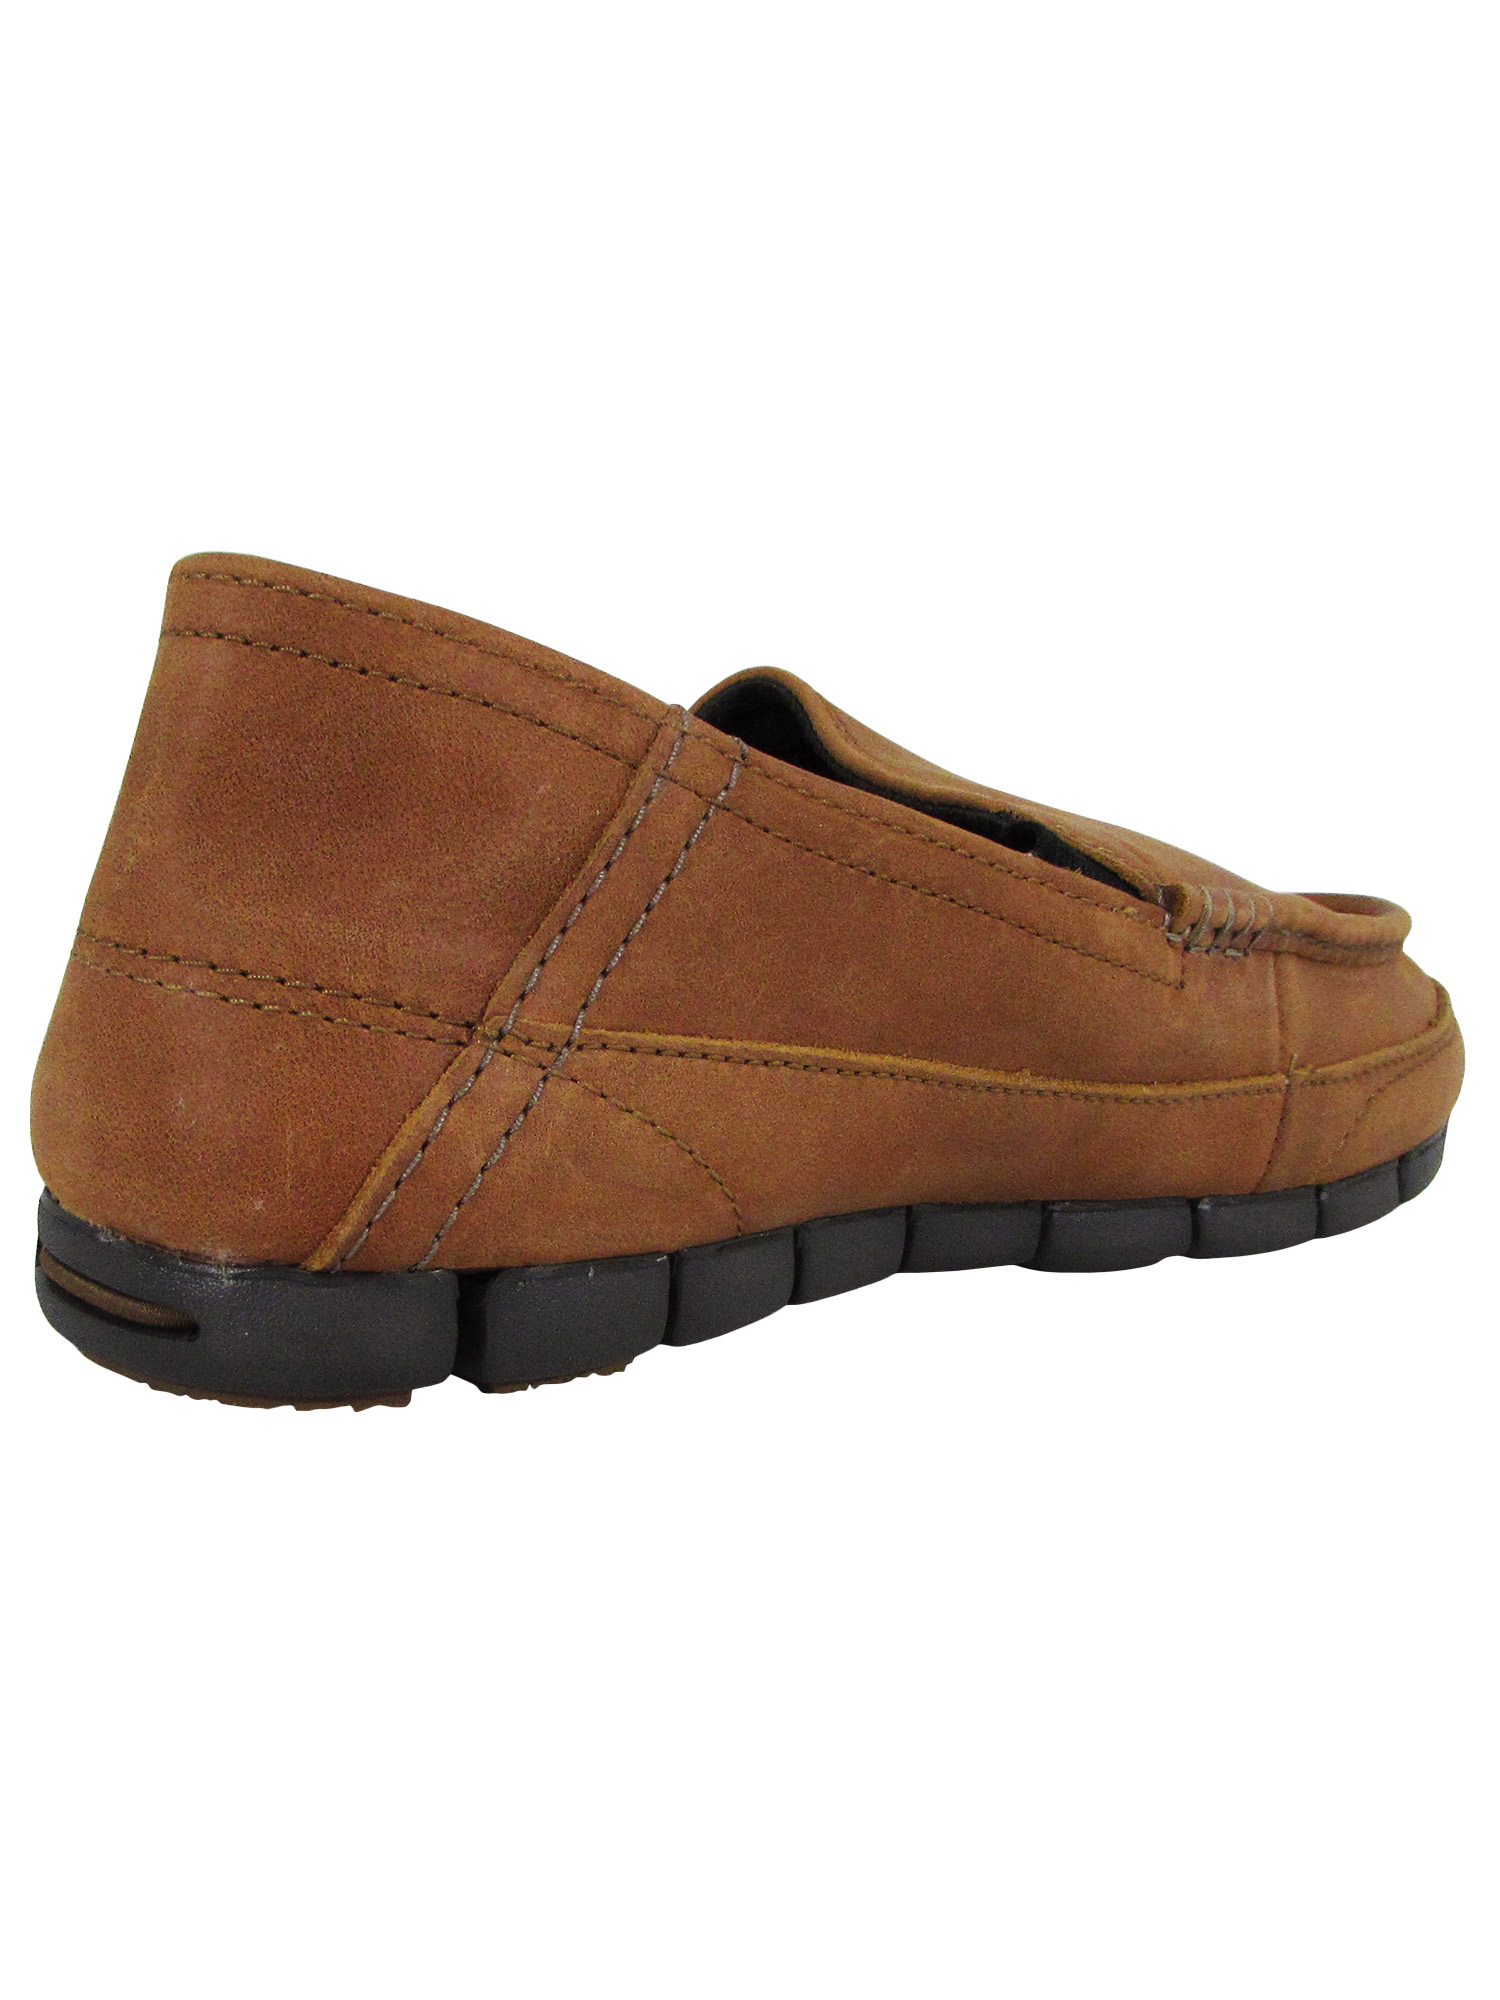 Crocs-Mens-Stretch-Sole-Leather-Loafer-Shoes thumbnail 7